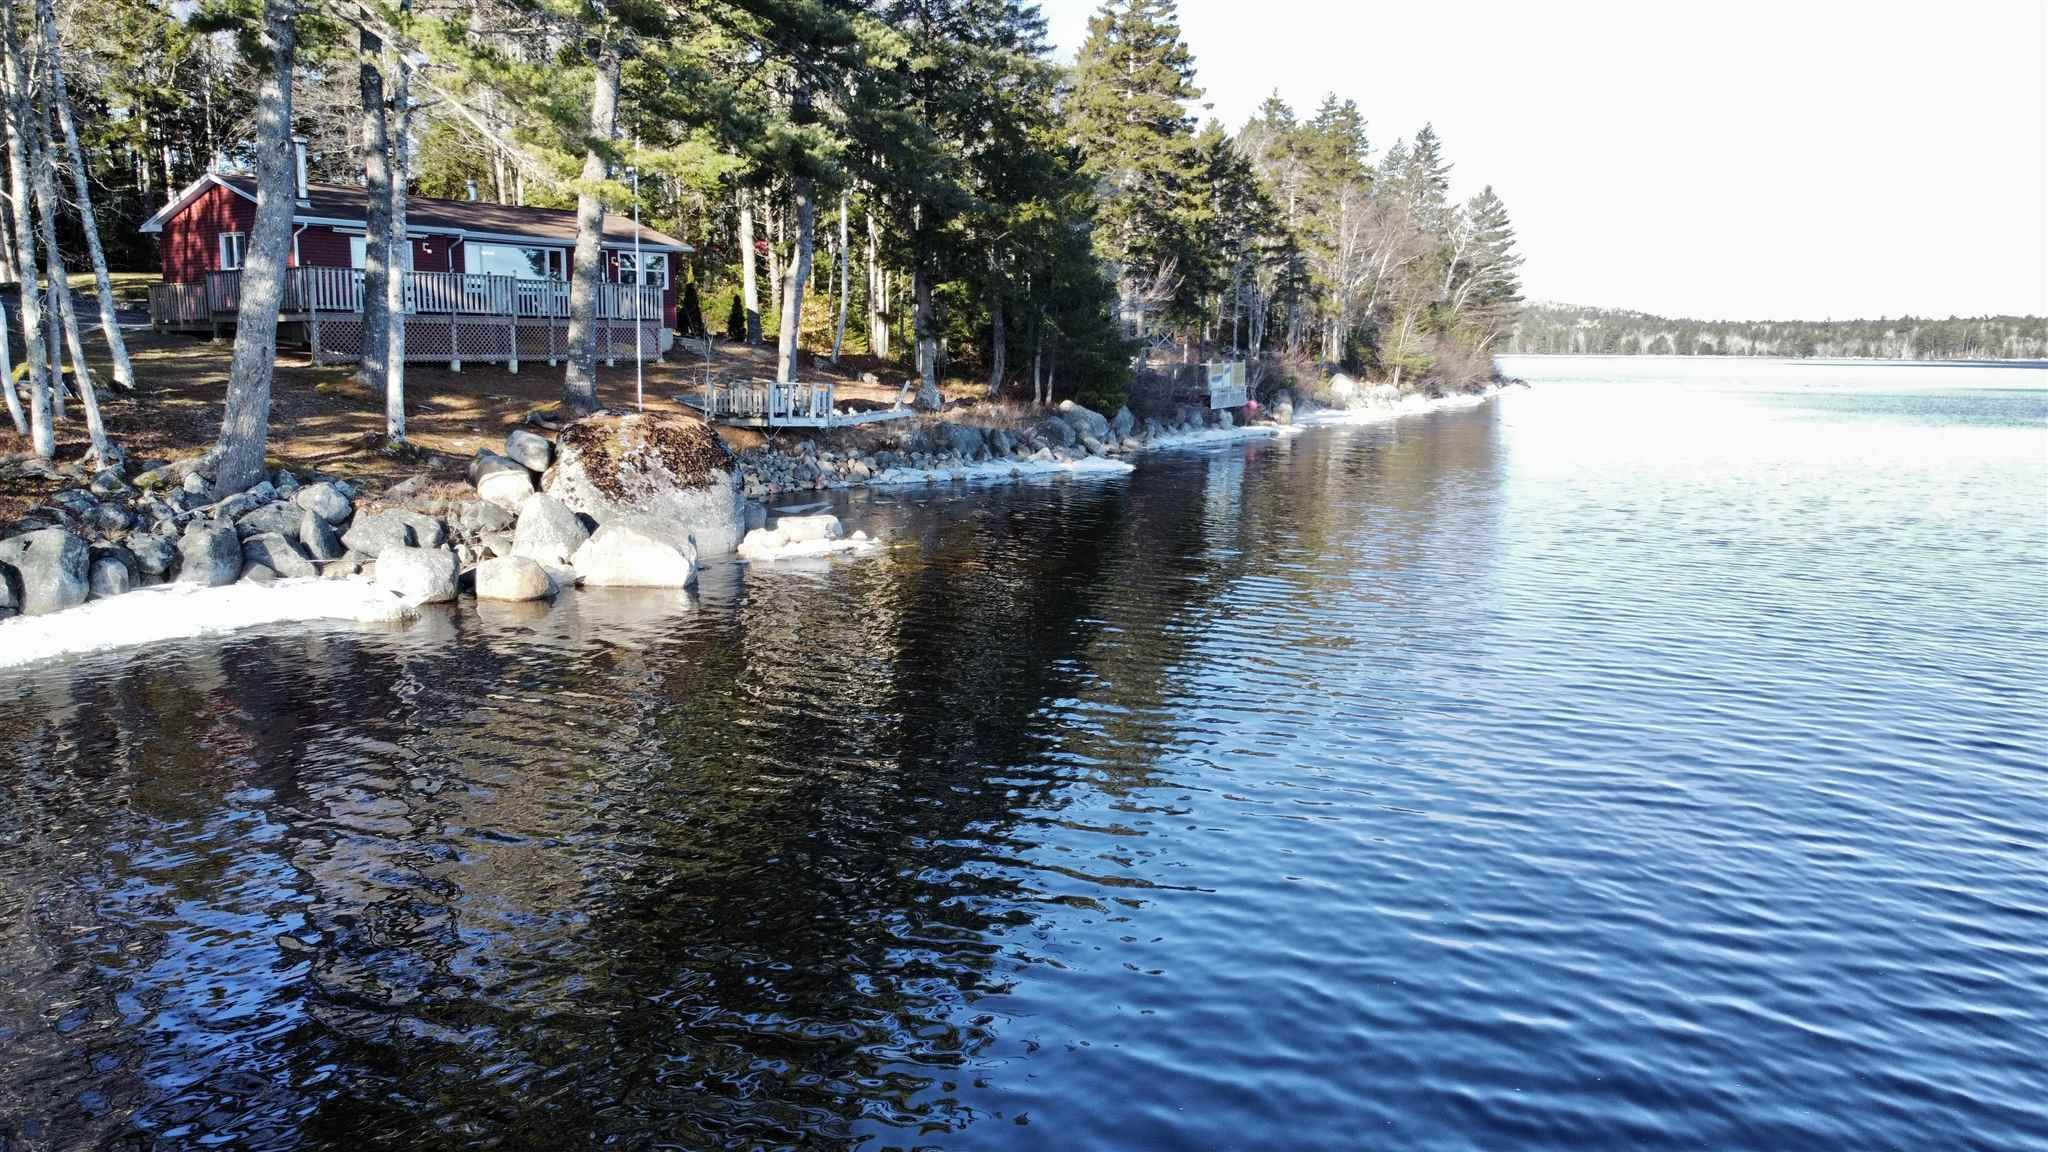 Main Photo: 376 Russells Cove Road in Parkdale: 405-Lunenburg County Residential for sale (South Shore)  : MLS®# 202100949